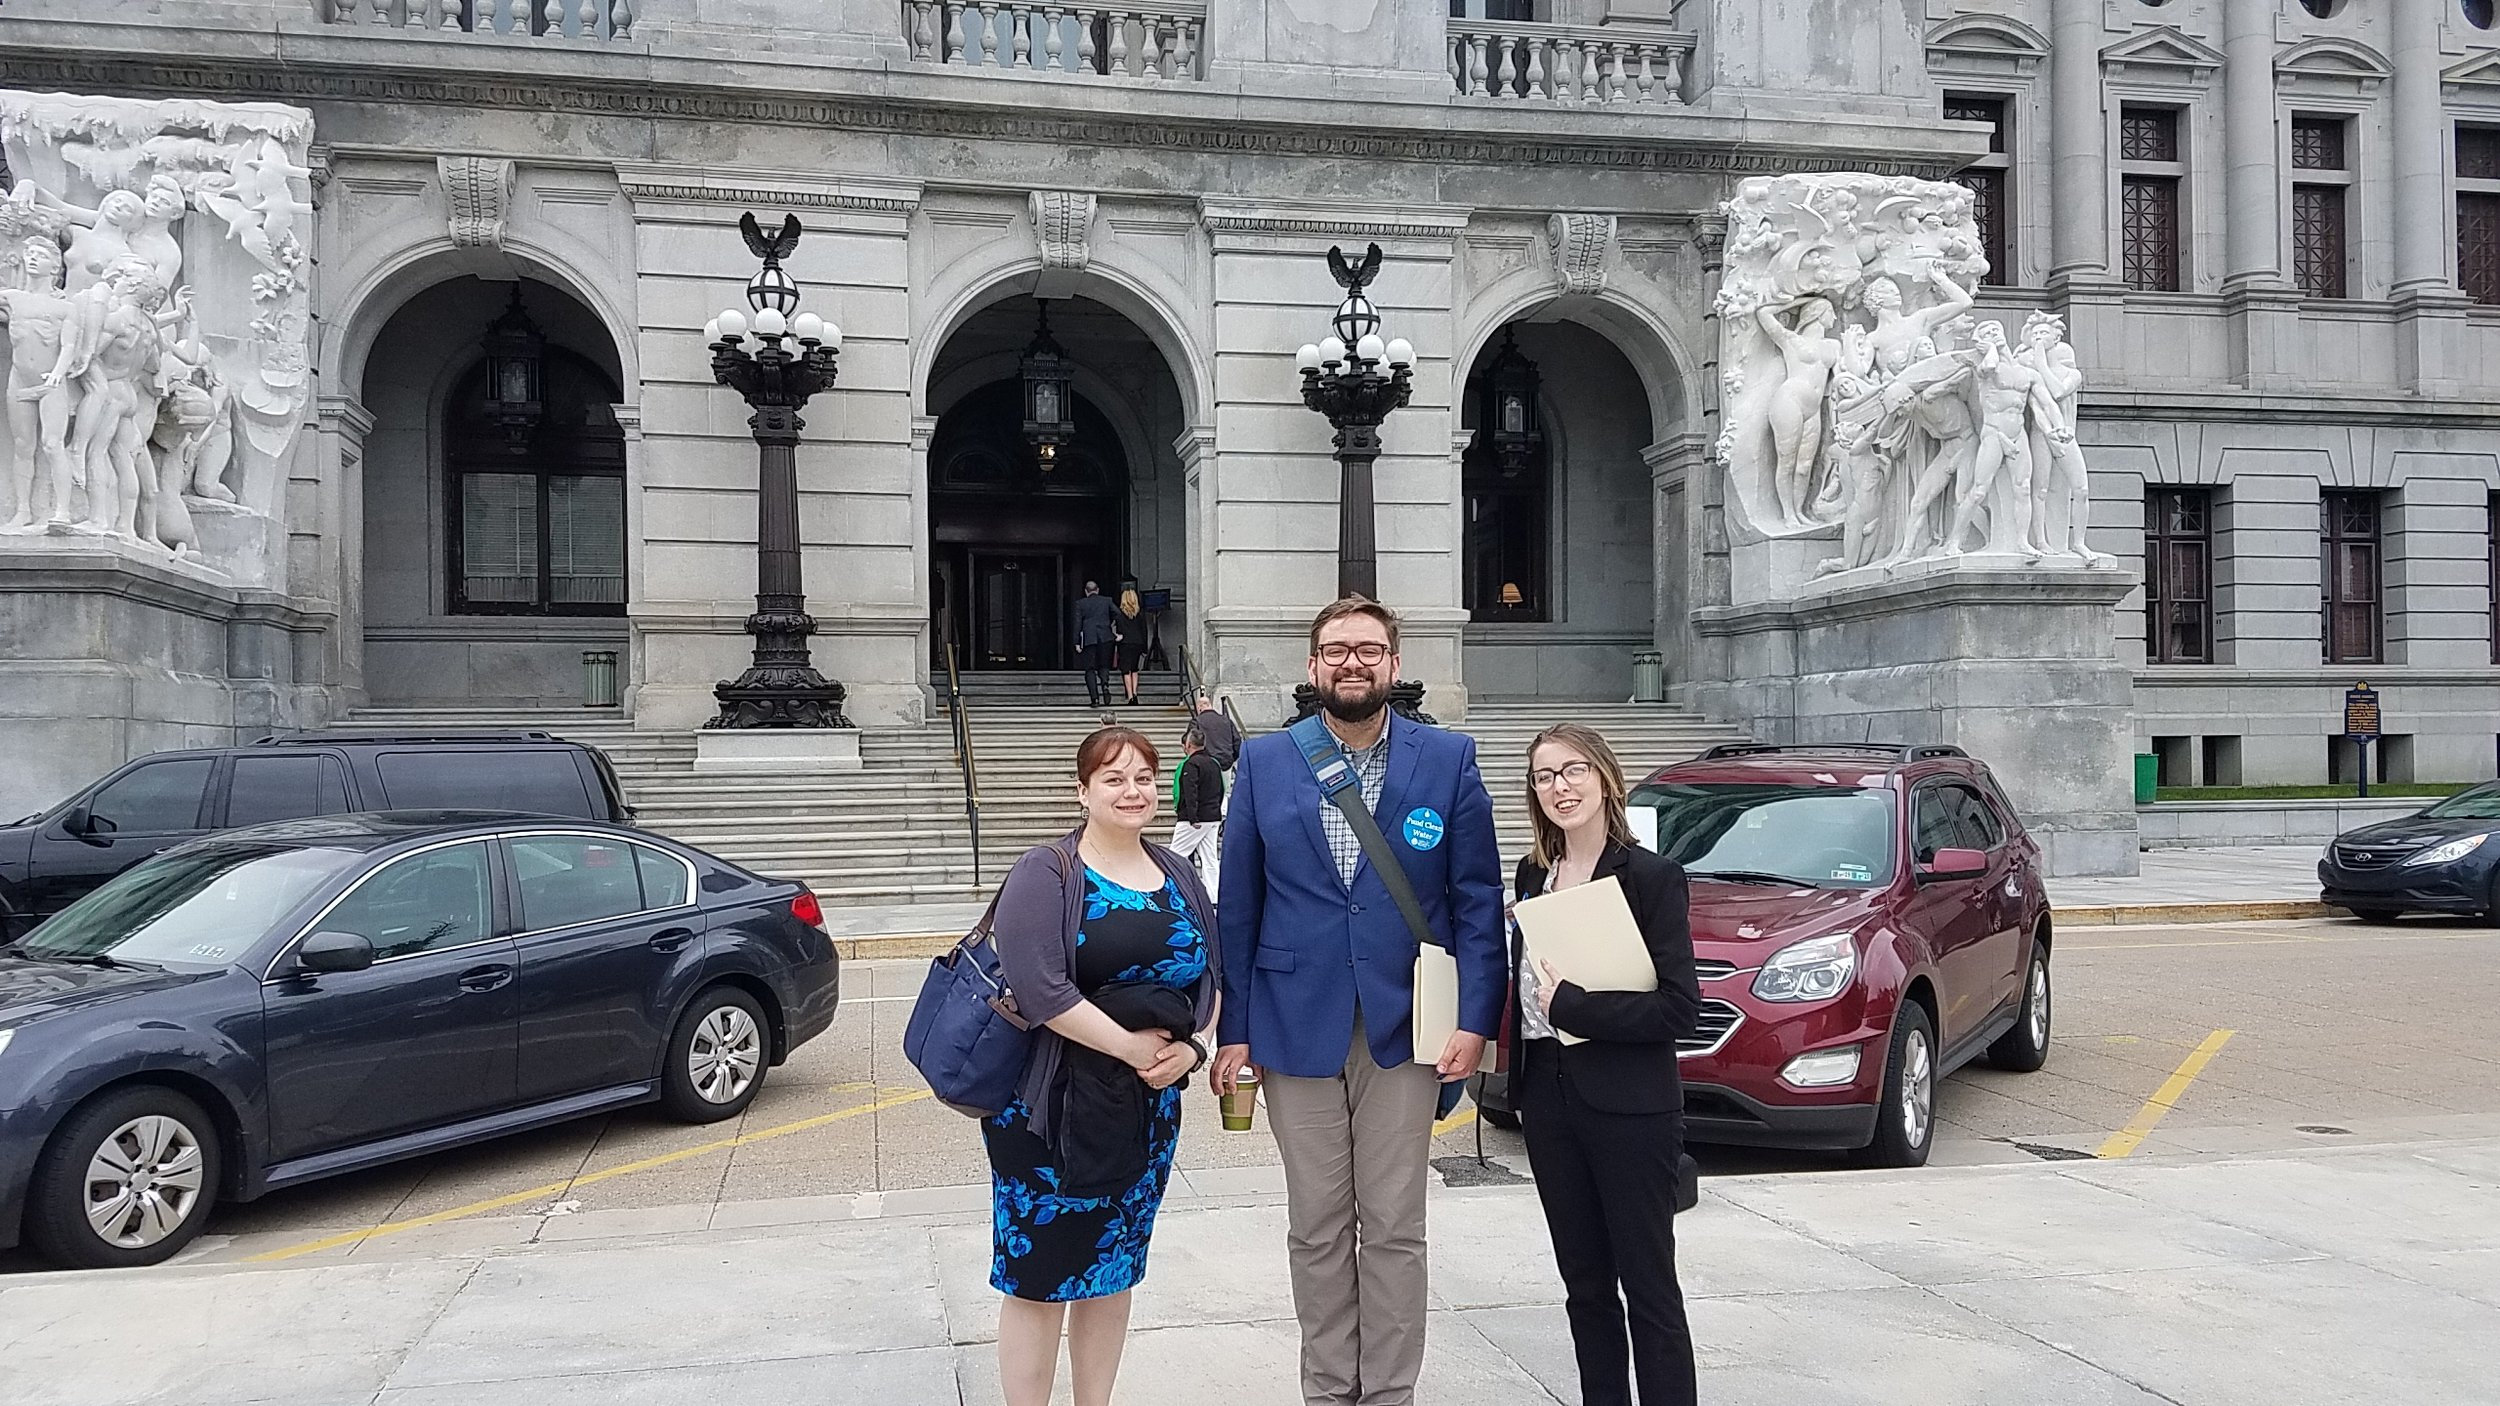 Emily of PennFuture, Kelly of CDRW, and Courtney of CDRW pose in front of the Harrisburg State House.